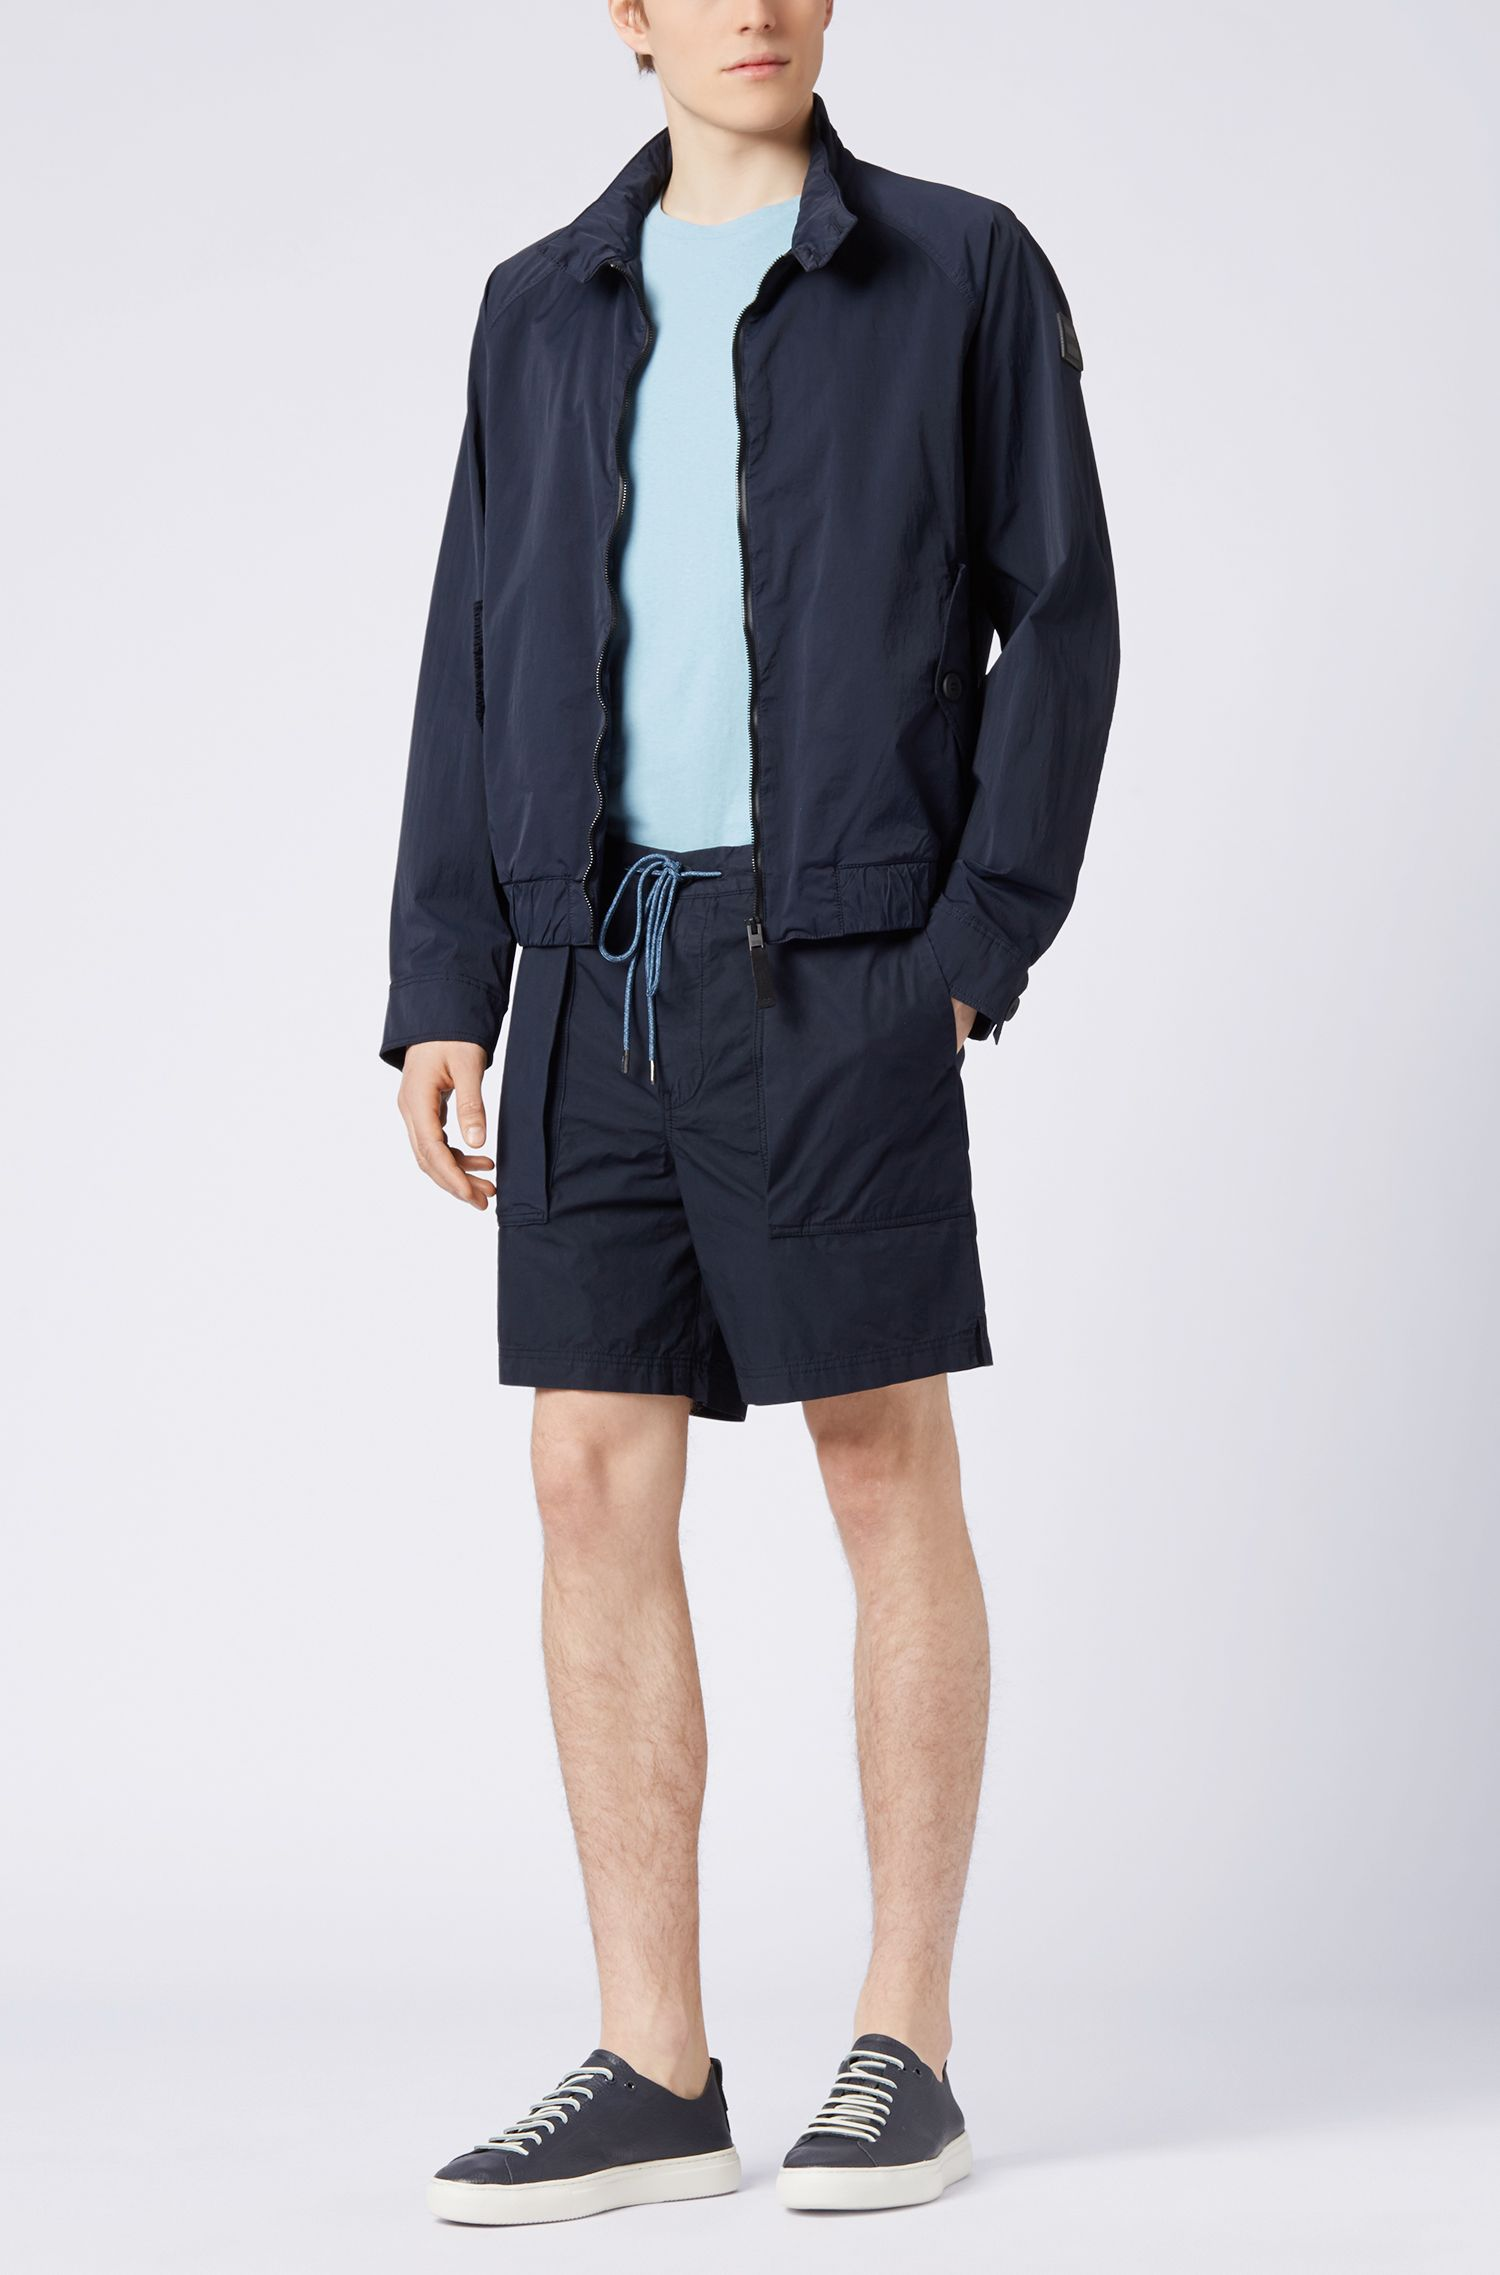 Relaxed-fit shorts in overdyed Italian cotton